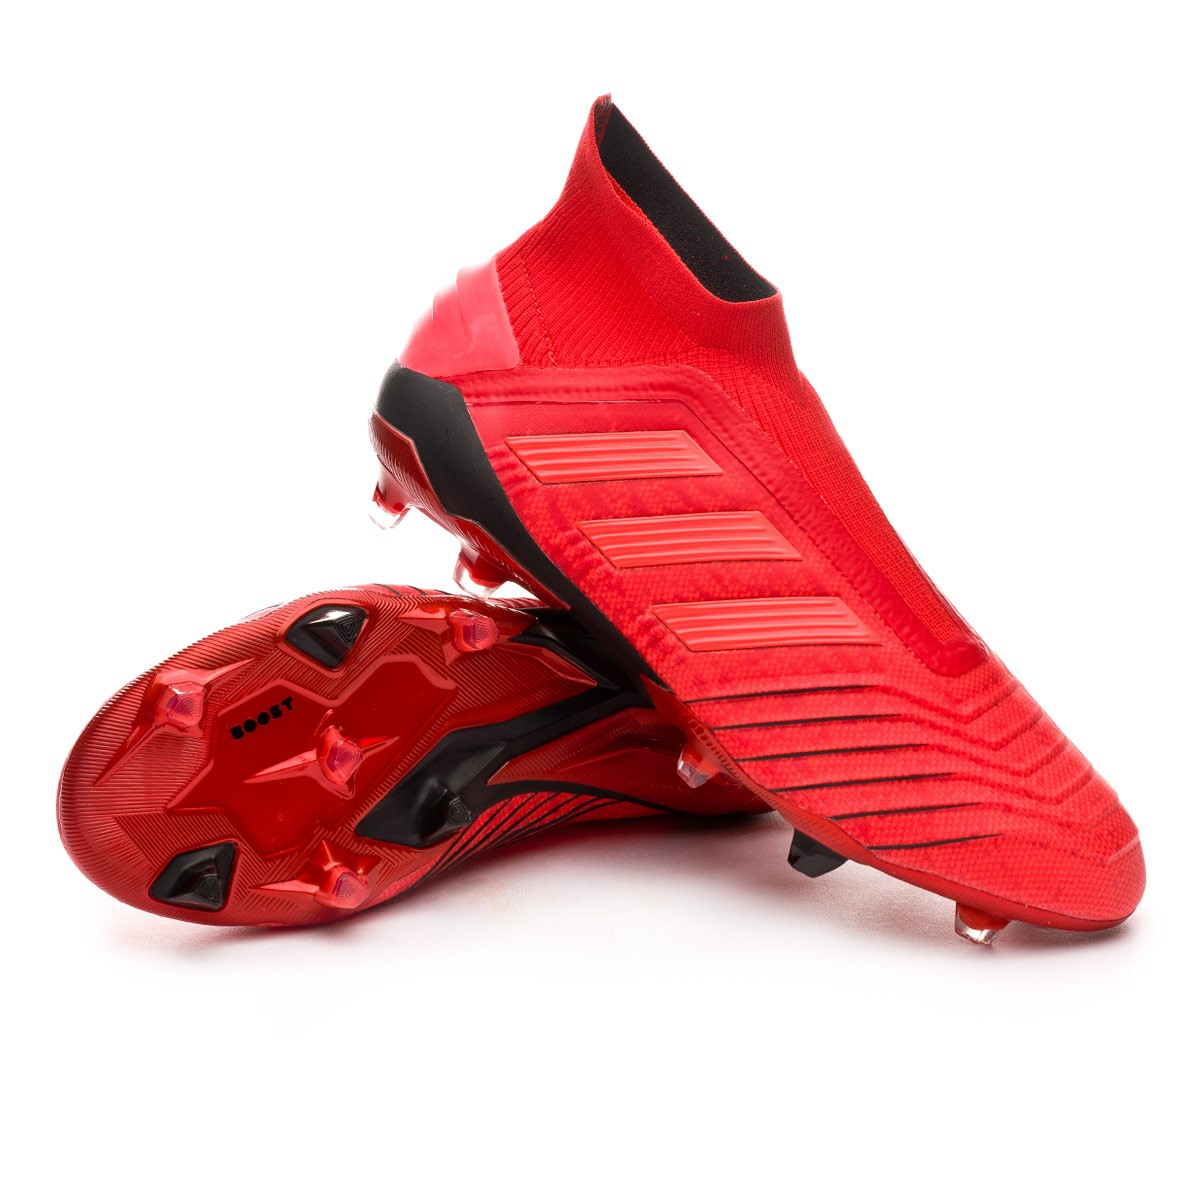 Red Bota Core Black Active 19Fg Predator Solar J1lKcFT